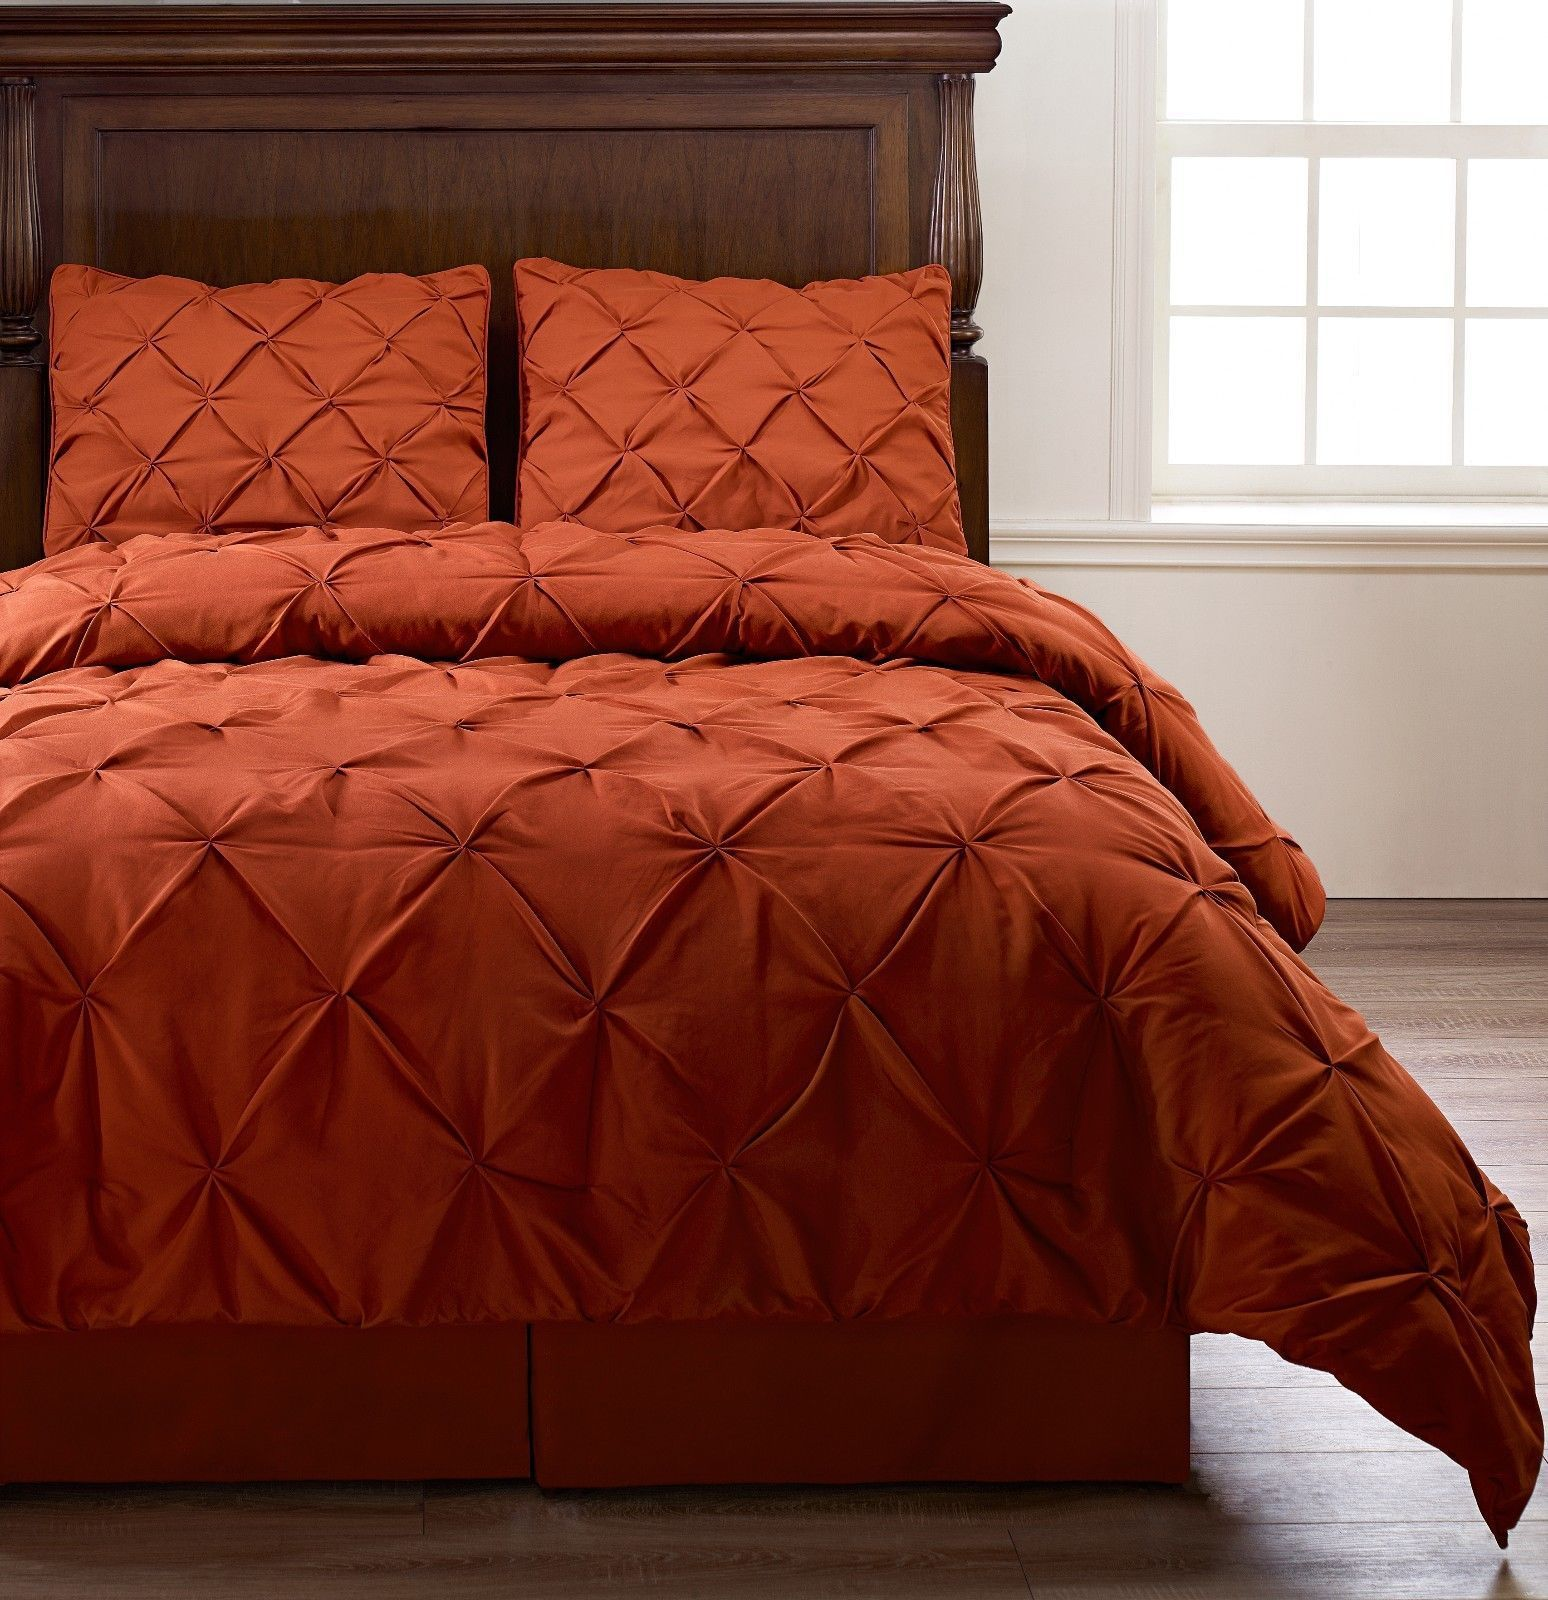 Burnt Orange Comforter Set Orange Bedding Comforter Sets Orange Comforter